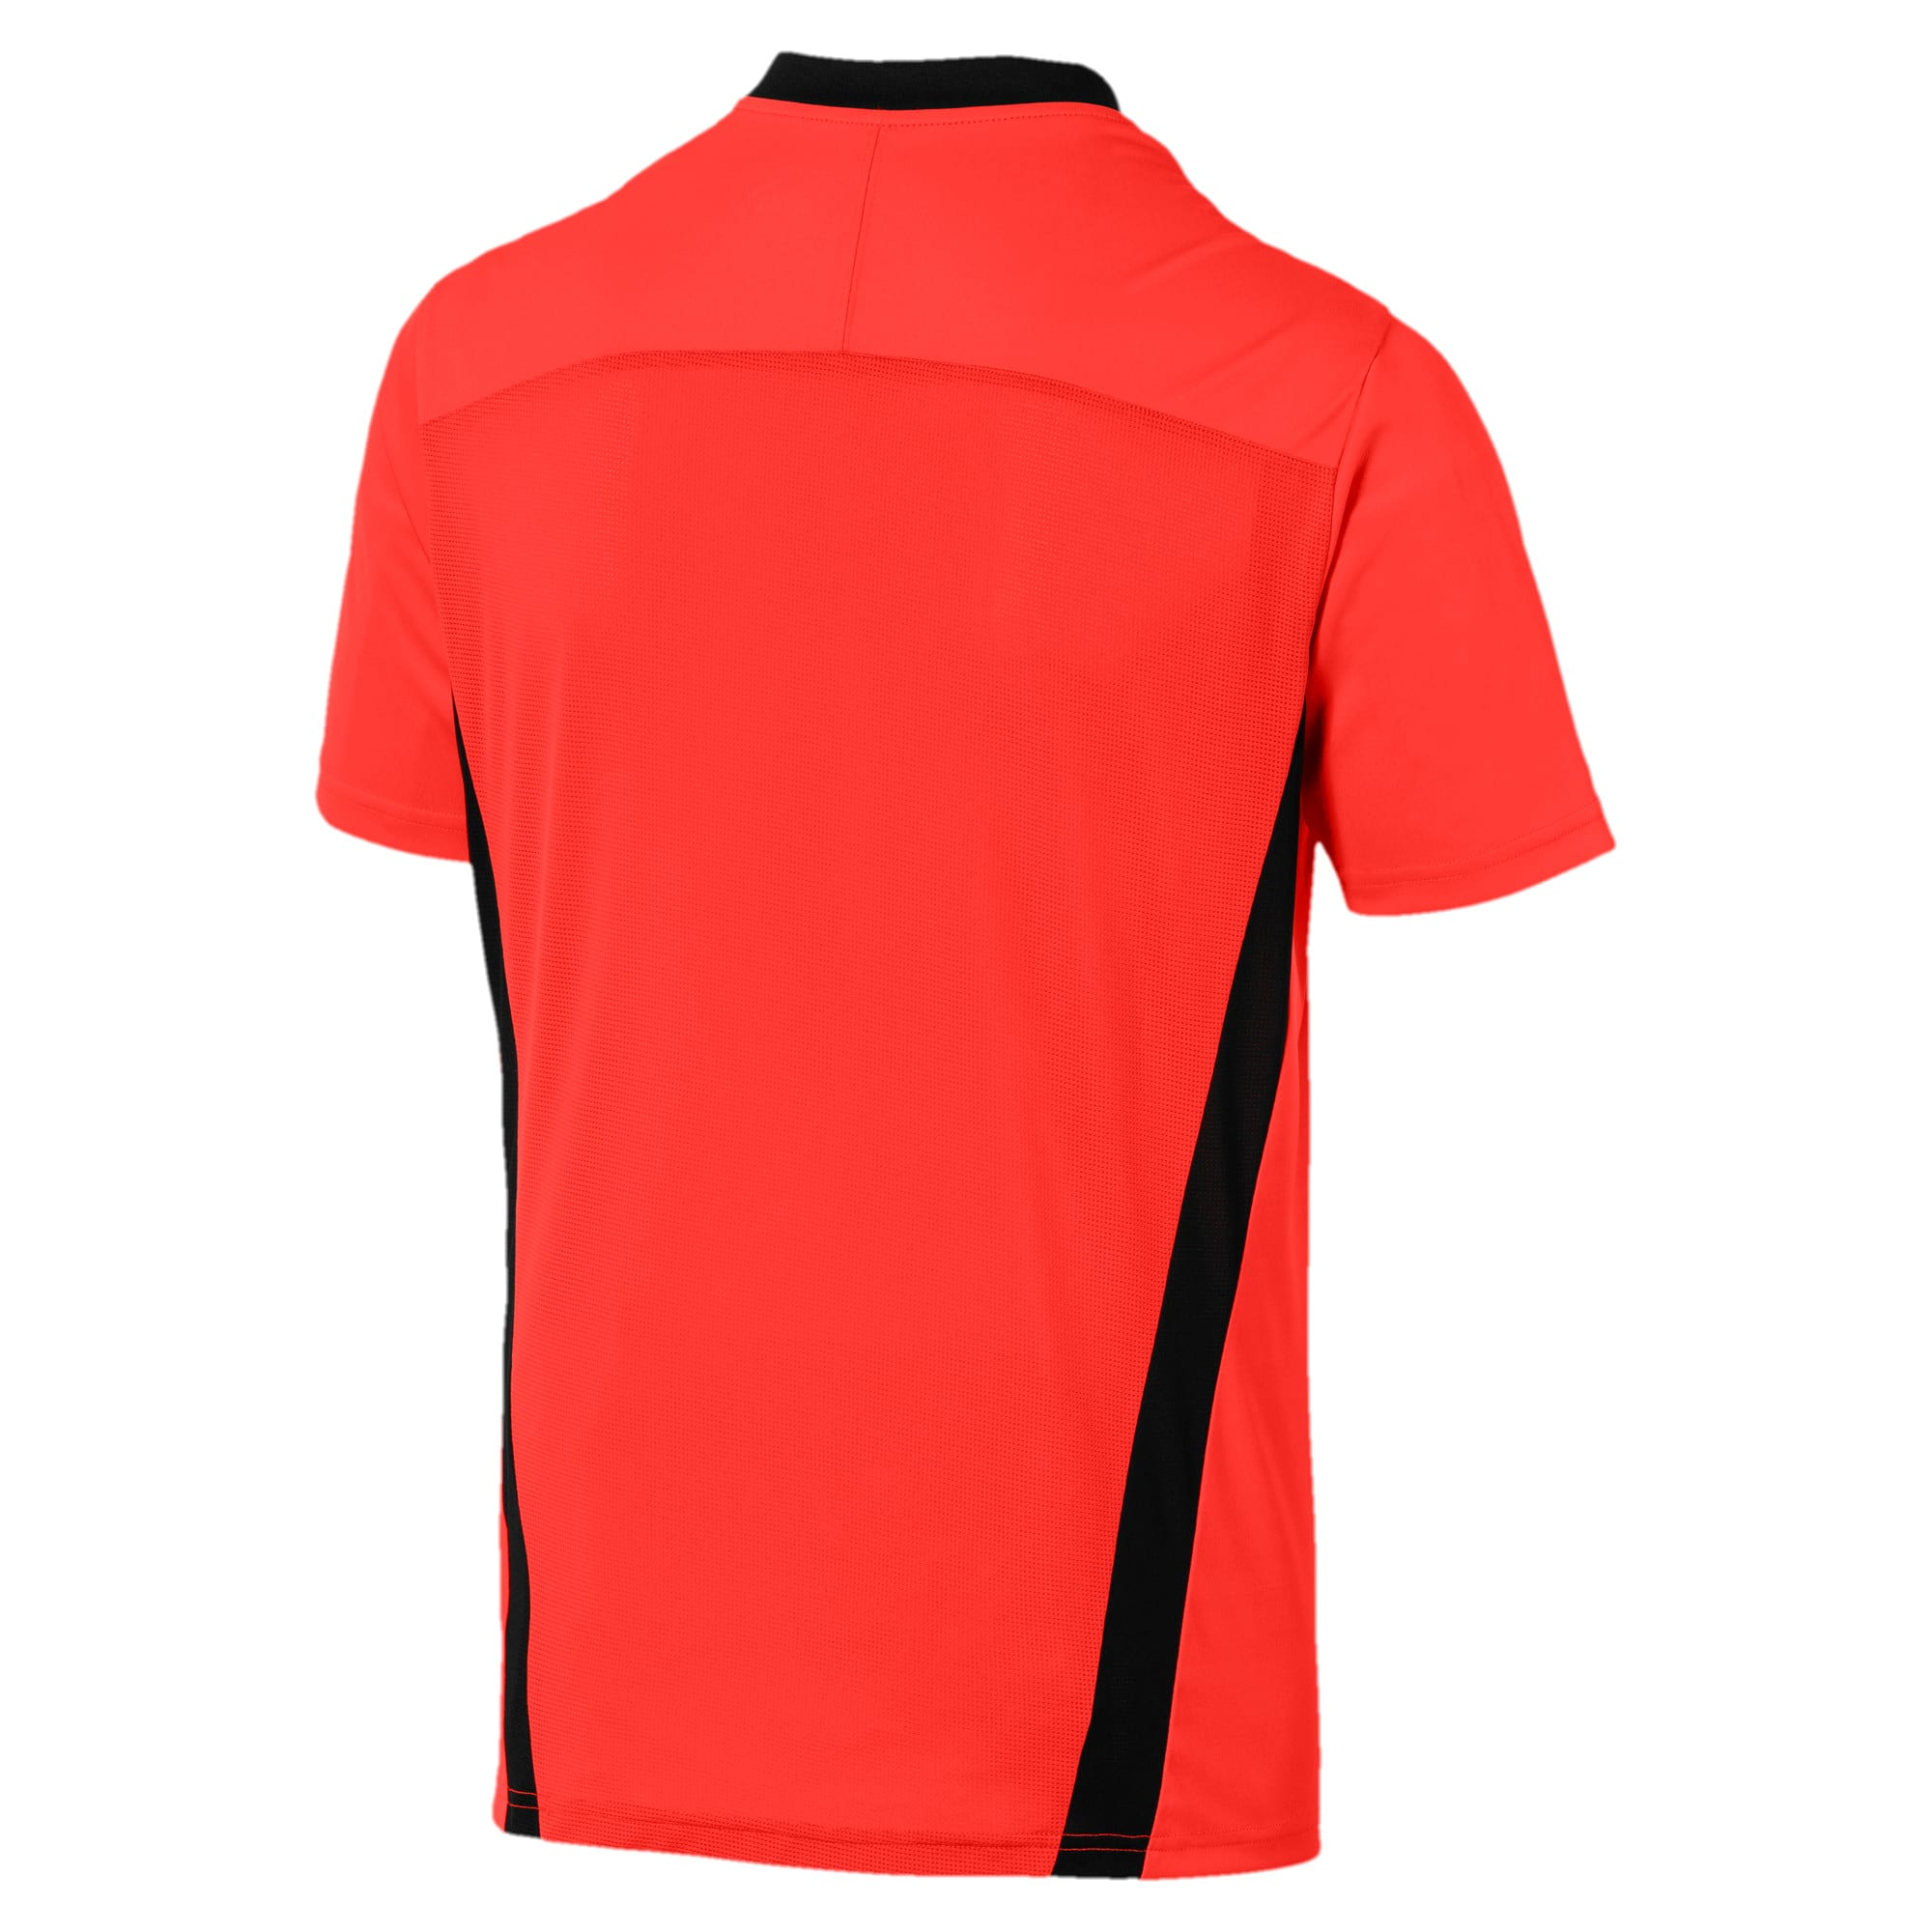 Thumbnail 5 of Herren T-Shirt, Nrgy Red-Puma Black, medium